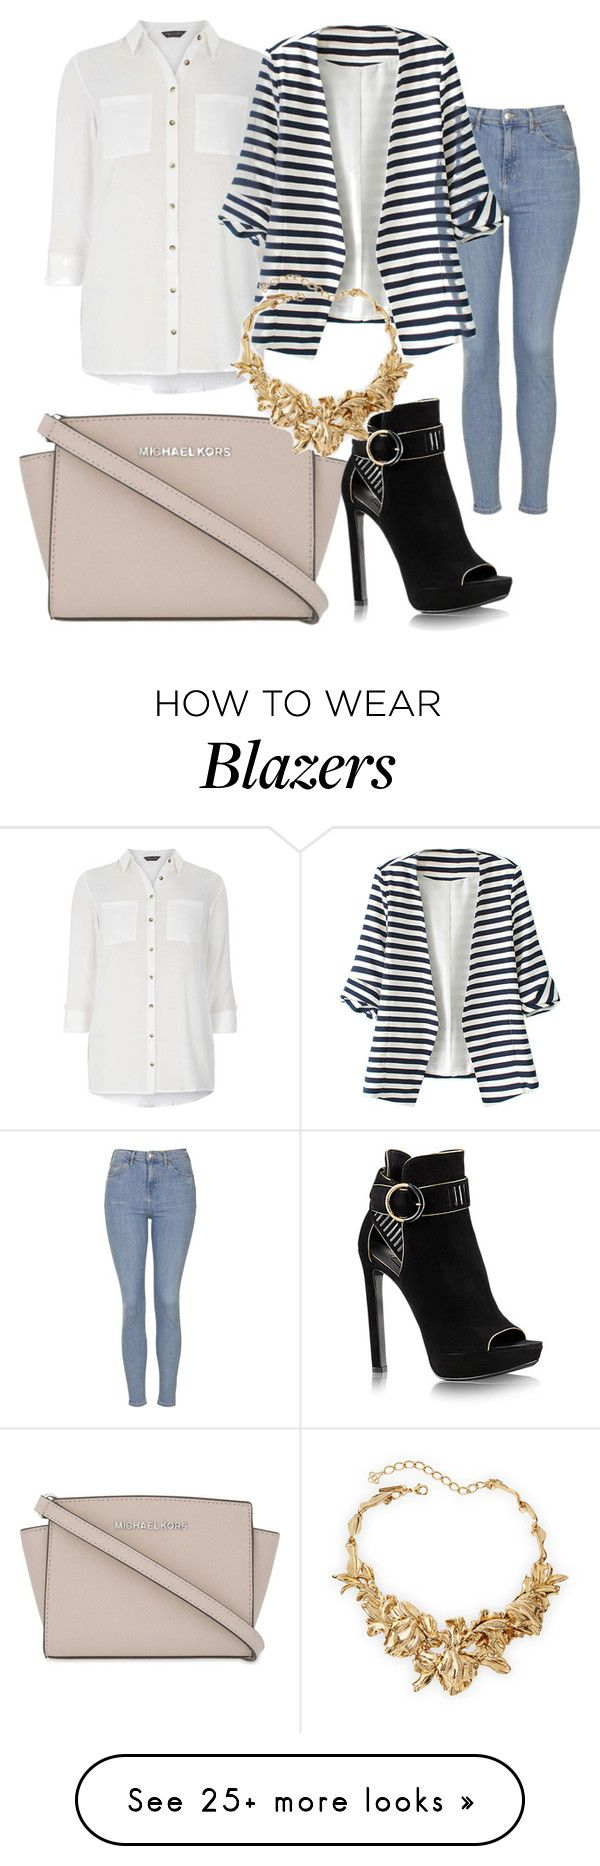 """""""Untitled #283"""" by alexandrawaldorf on Polyvore featuring Dorothy Perkins, Topshop, WithChic, MICHAEL Michael Kors, Oscar de la Renta, women's clothing, women, female, woman and misses"""